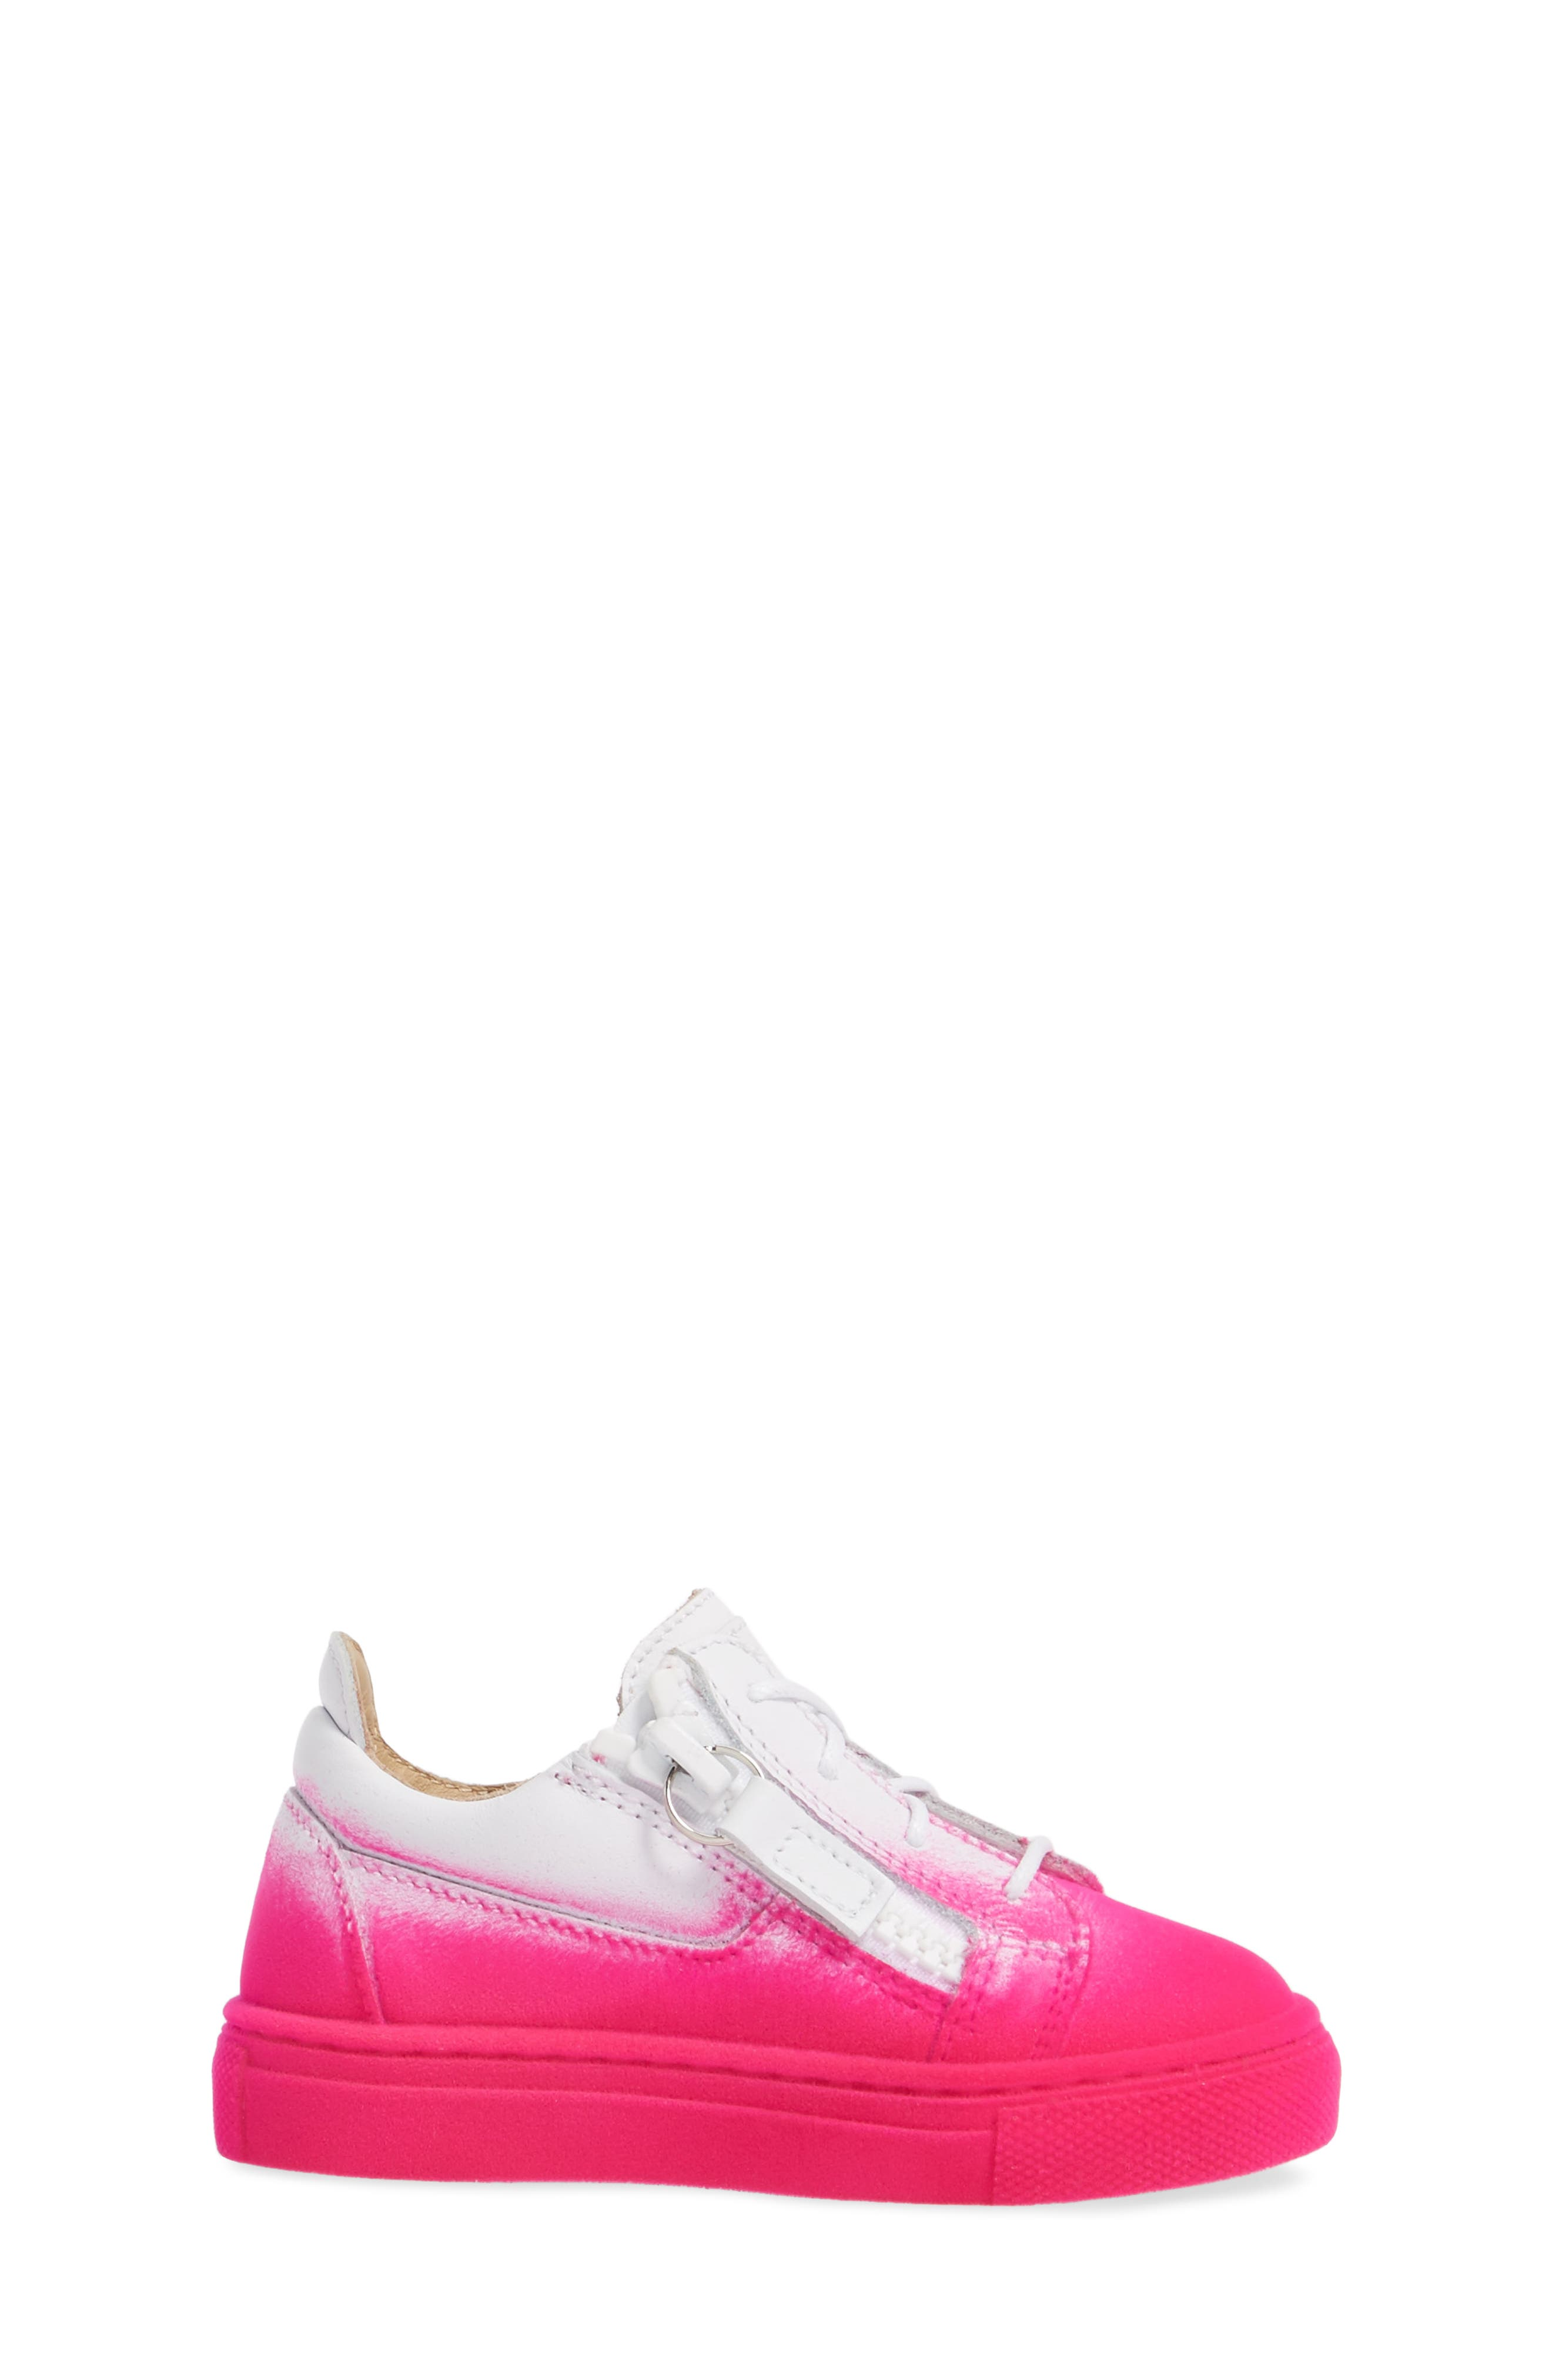 Alternate Image 3  - Giuseppe Zanotti Smuggy Ombré Flocked Sneaker (Baby, Walker, Toddler & Little Kid)